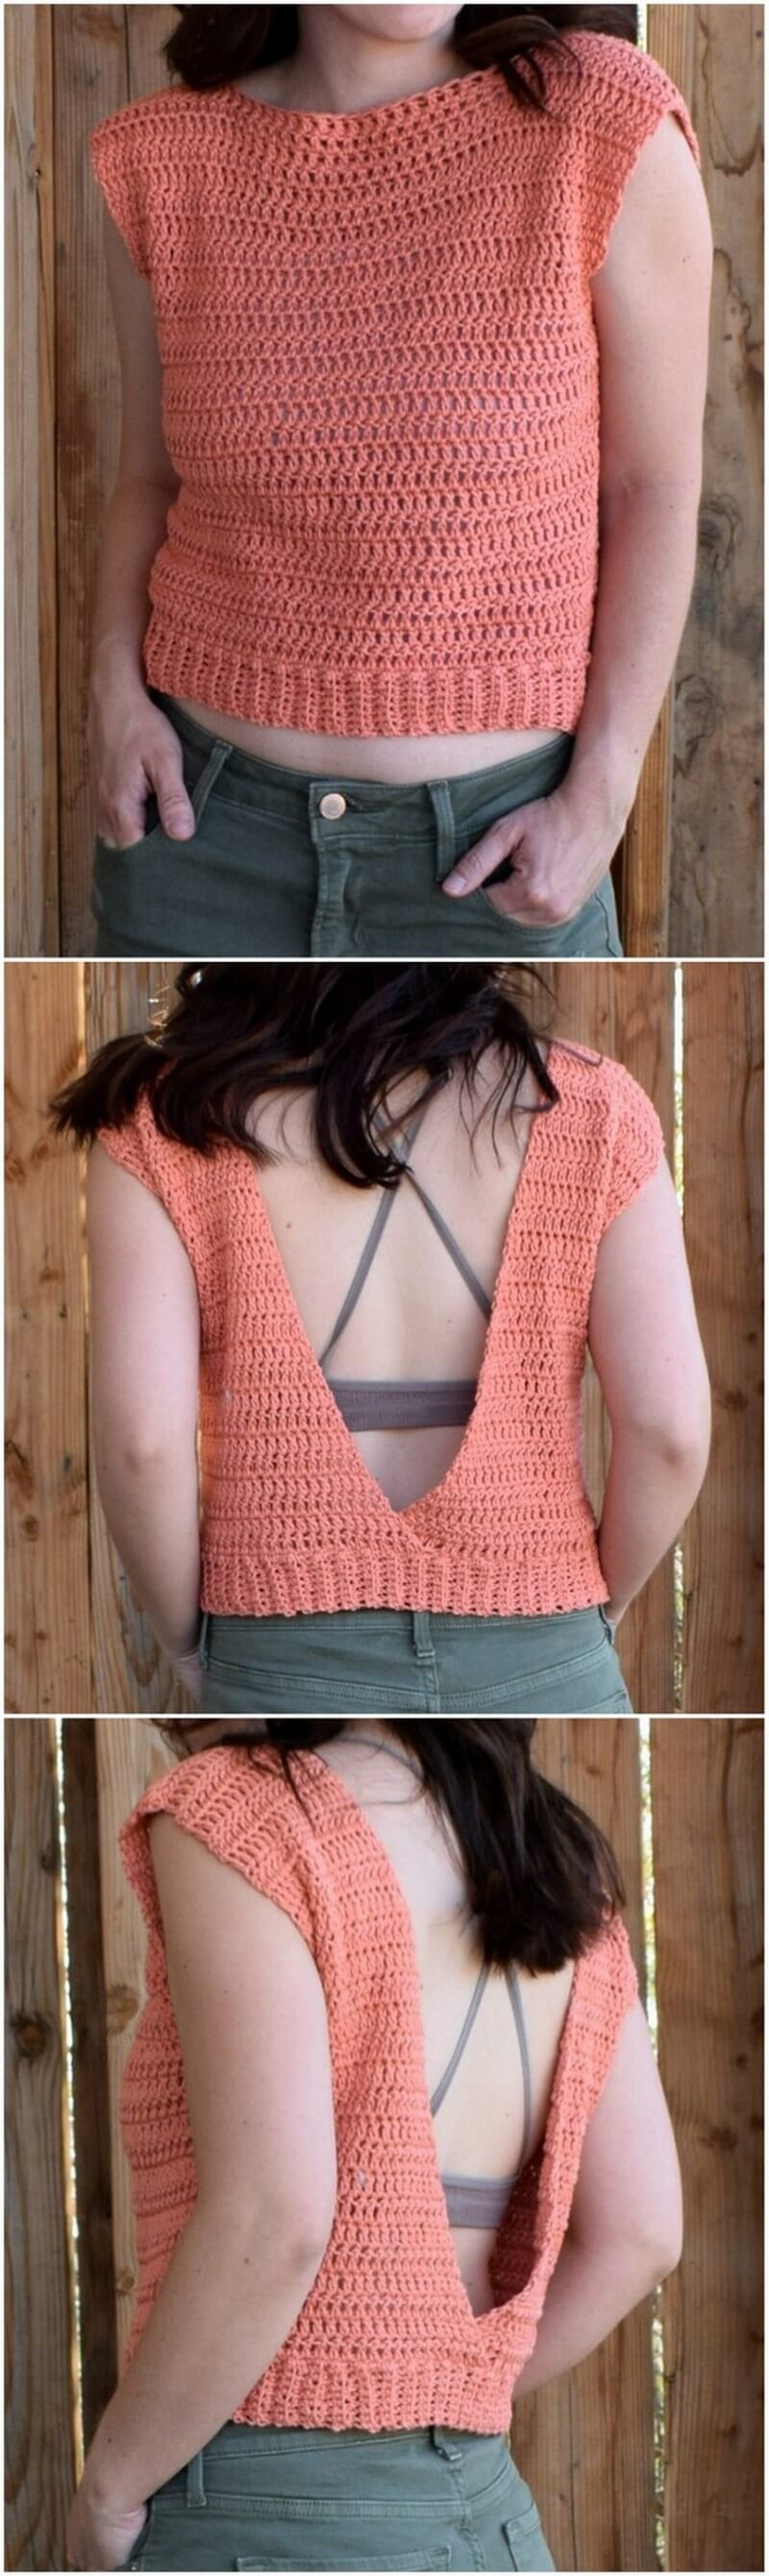 Crochet Top Pattern (8)